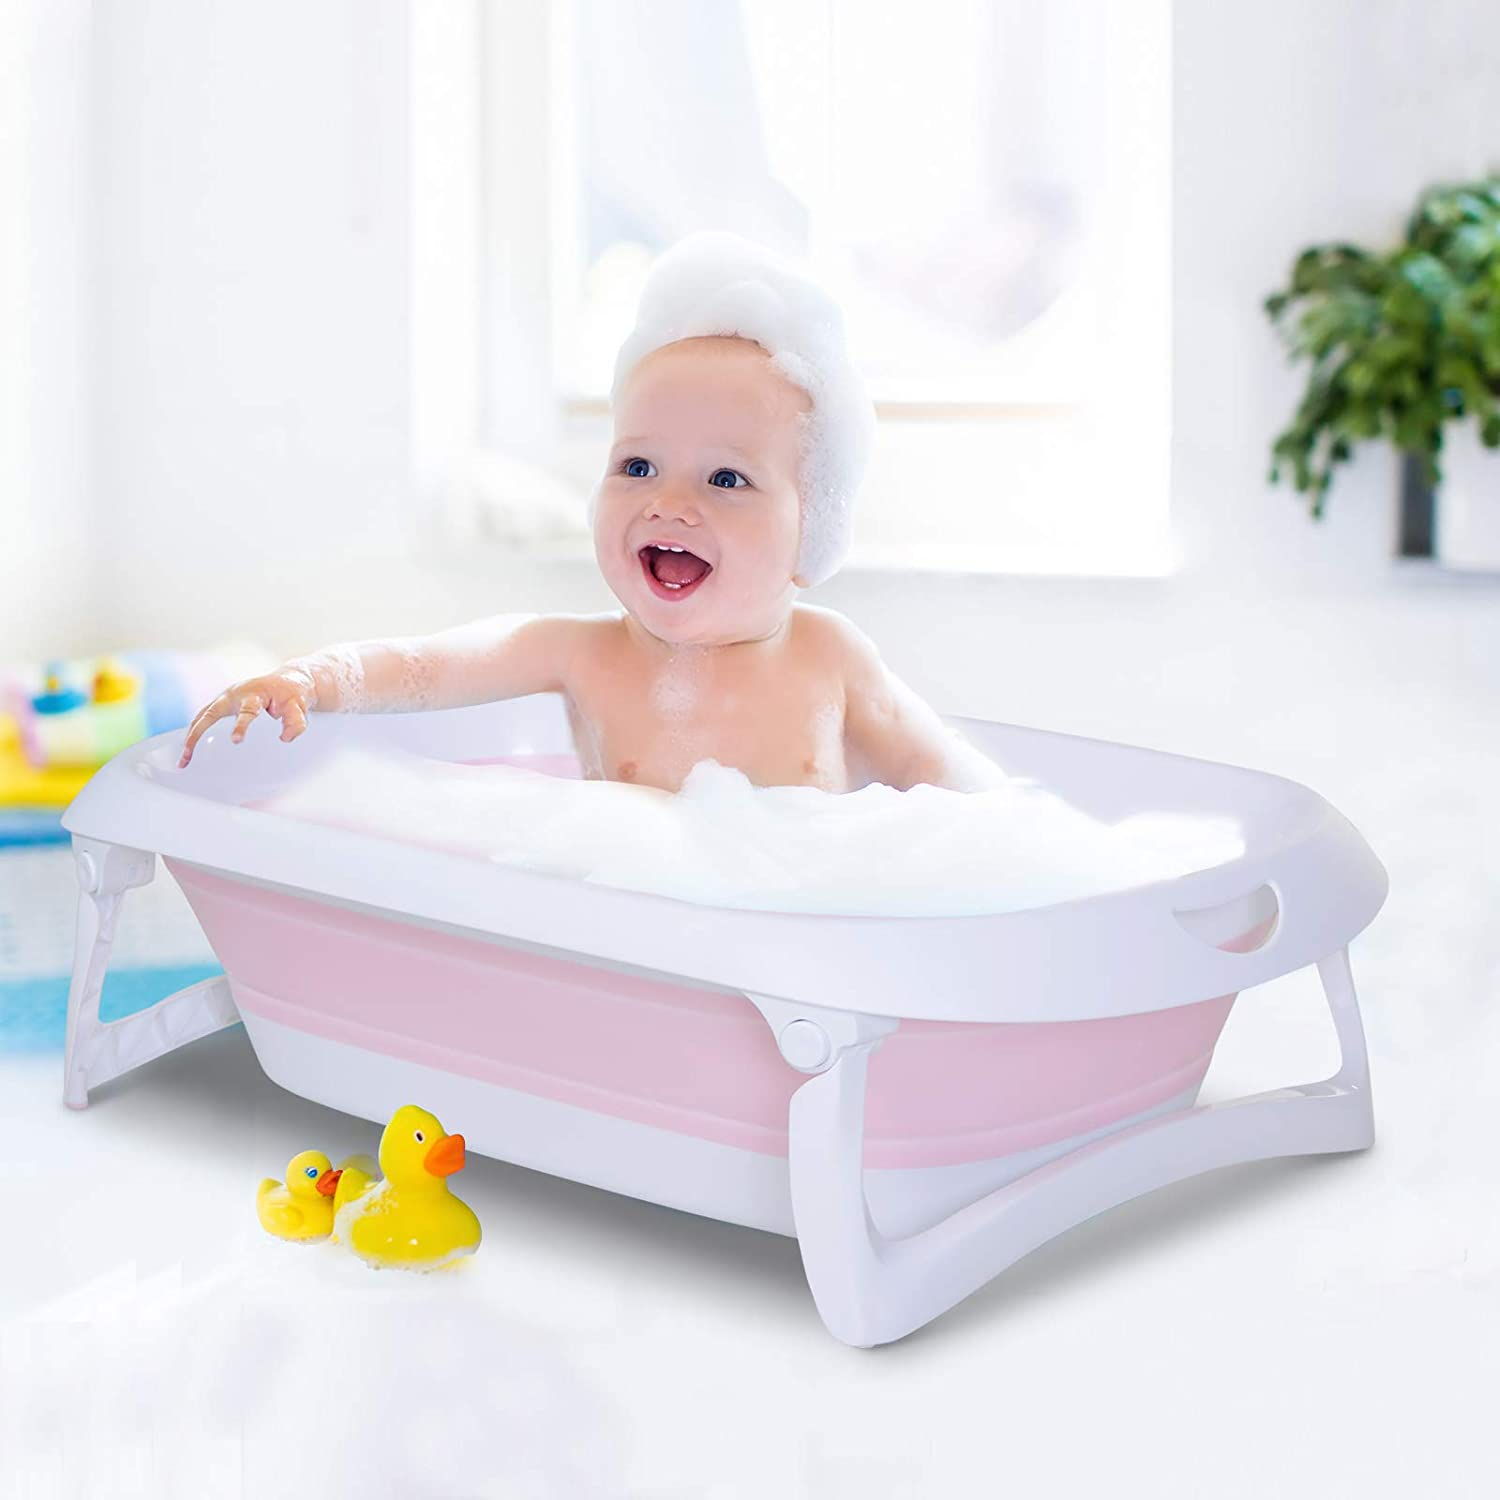 HOMCOM Folding Baby Bath Tub Toddler Kids Infant Safety Shower Slide Protection Comfortable Portable Pink